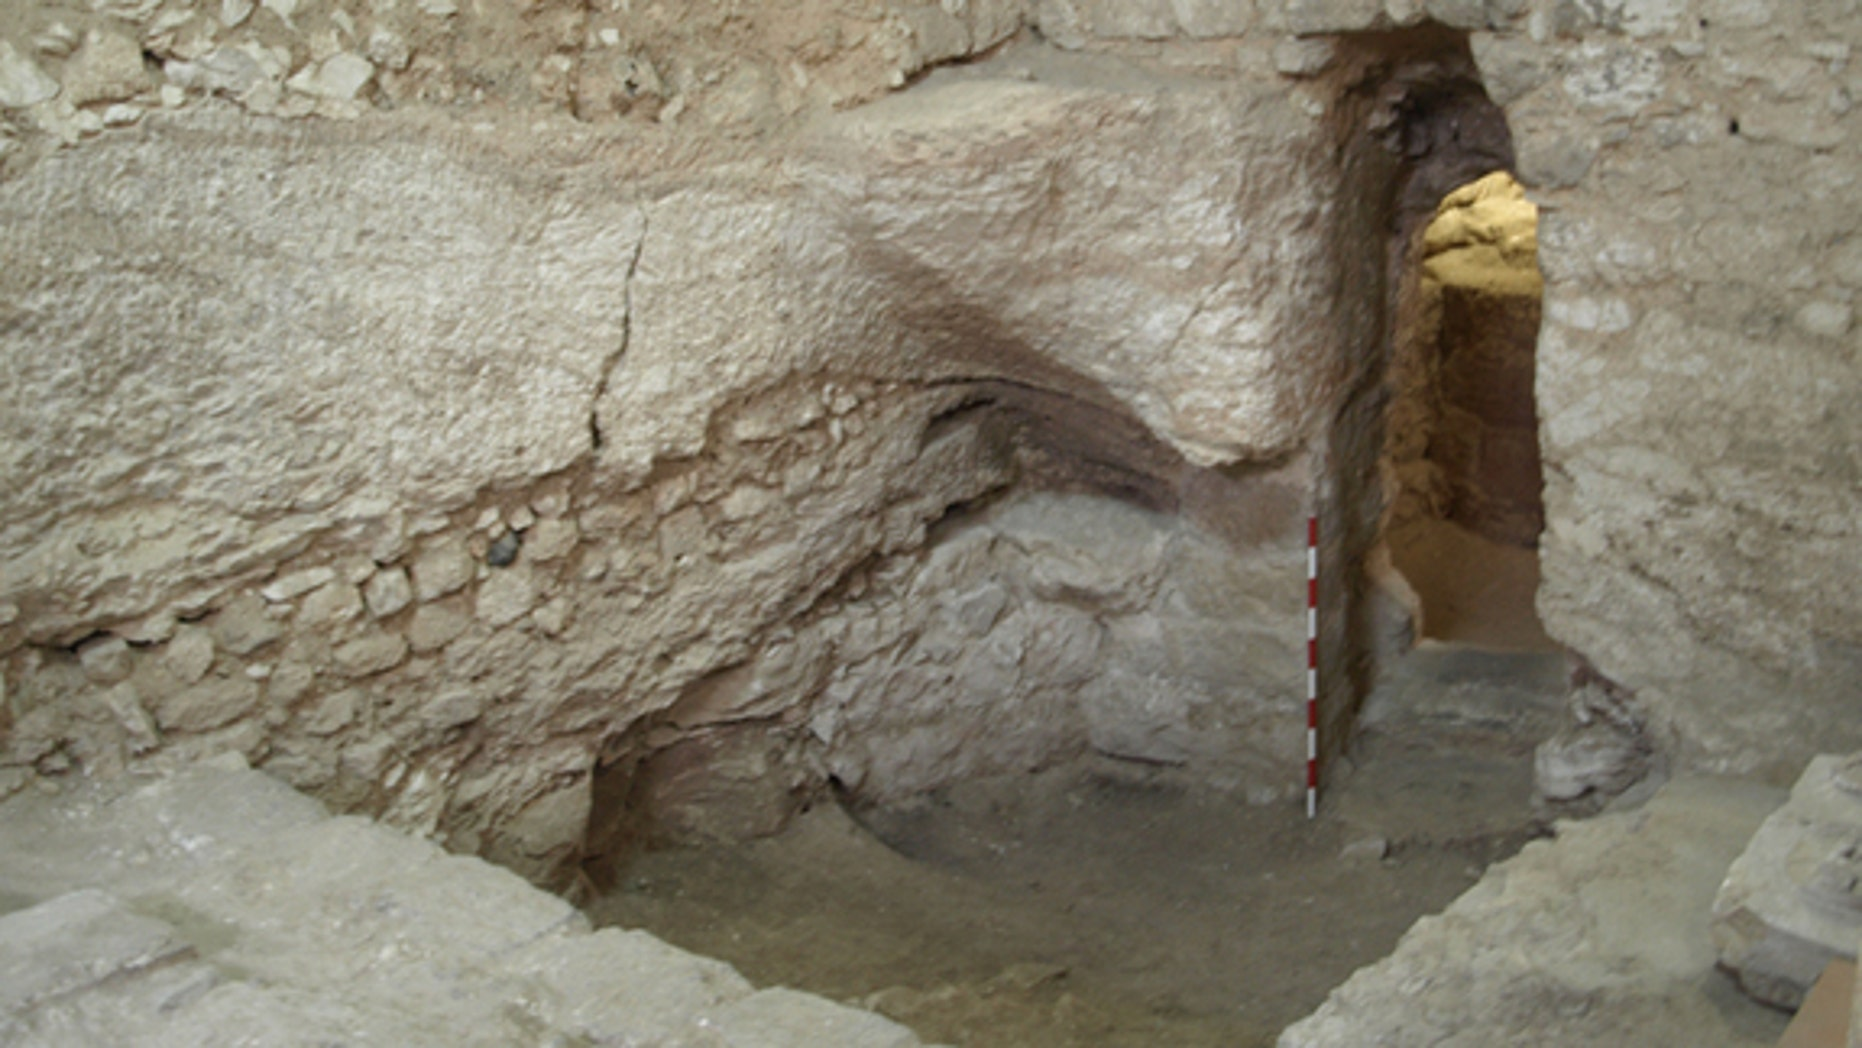 People in the Middle Ages believed Jesus grew up in this first-century house in Nazareth, according to research.